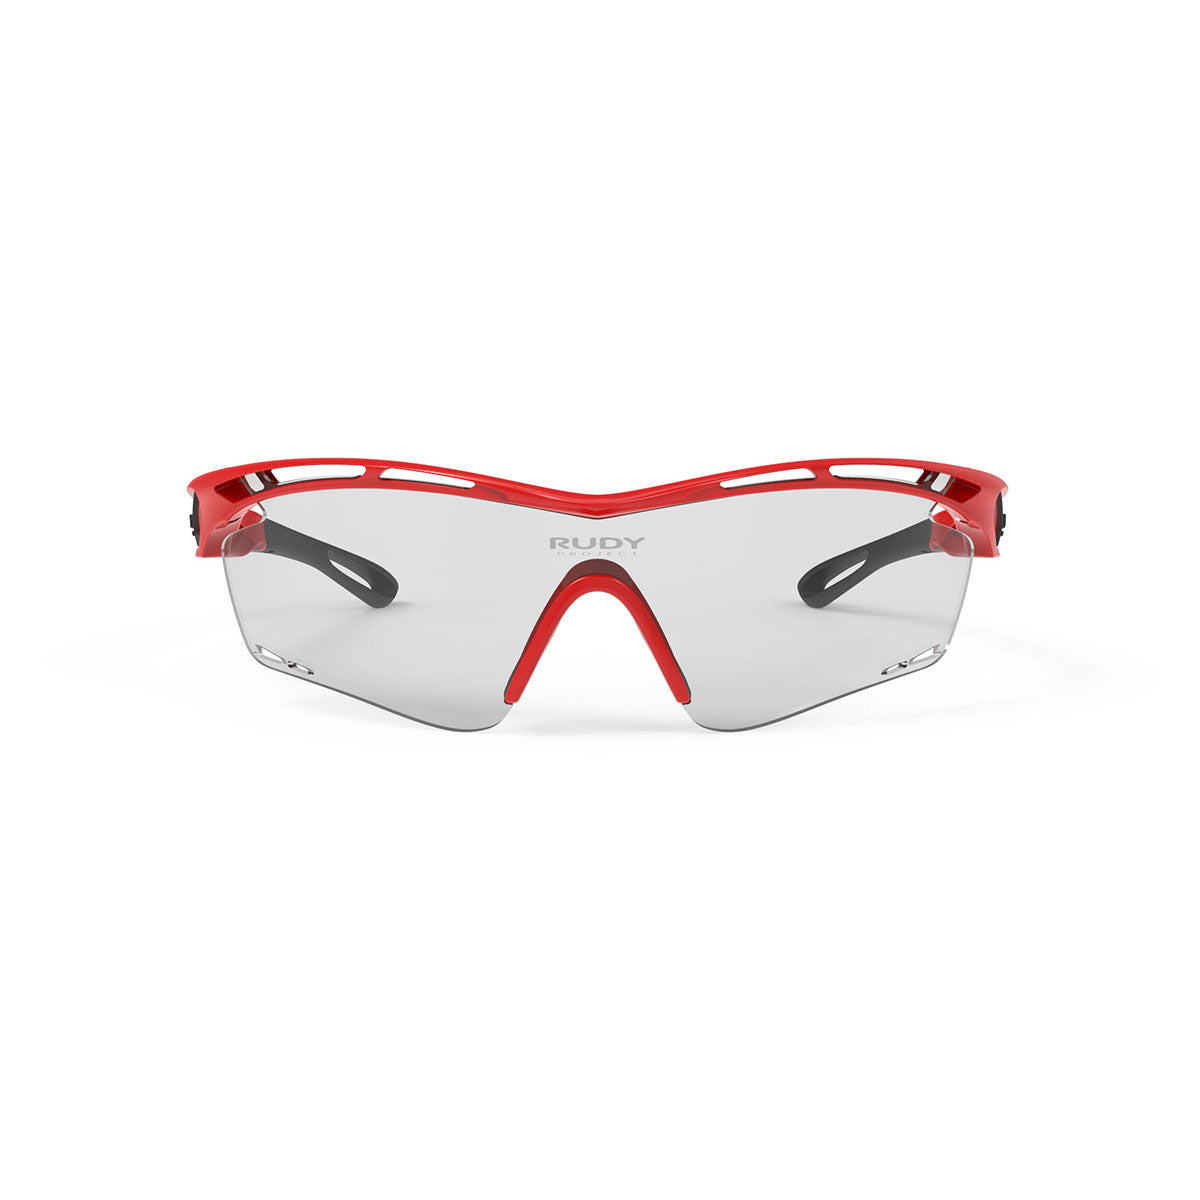 Rudy Project - Tralyx - frame color: Fire Red Gloss - lens color: ImpactX-2 Photochromic Clear to Black - photo angle: Front View Variant Hover Image